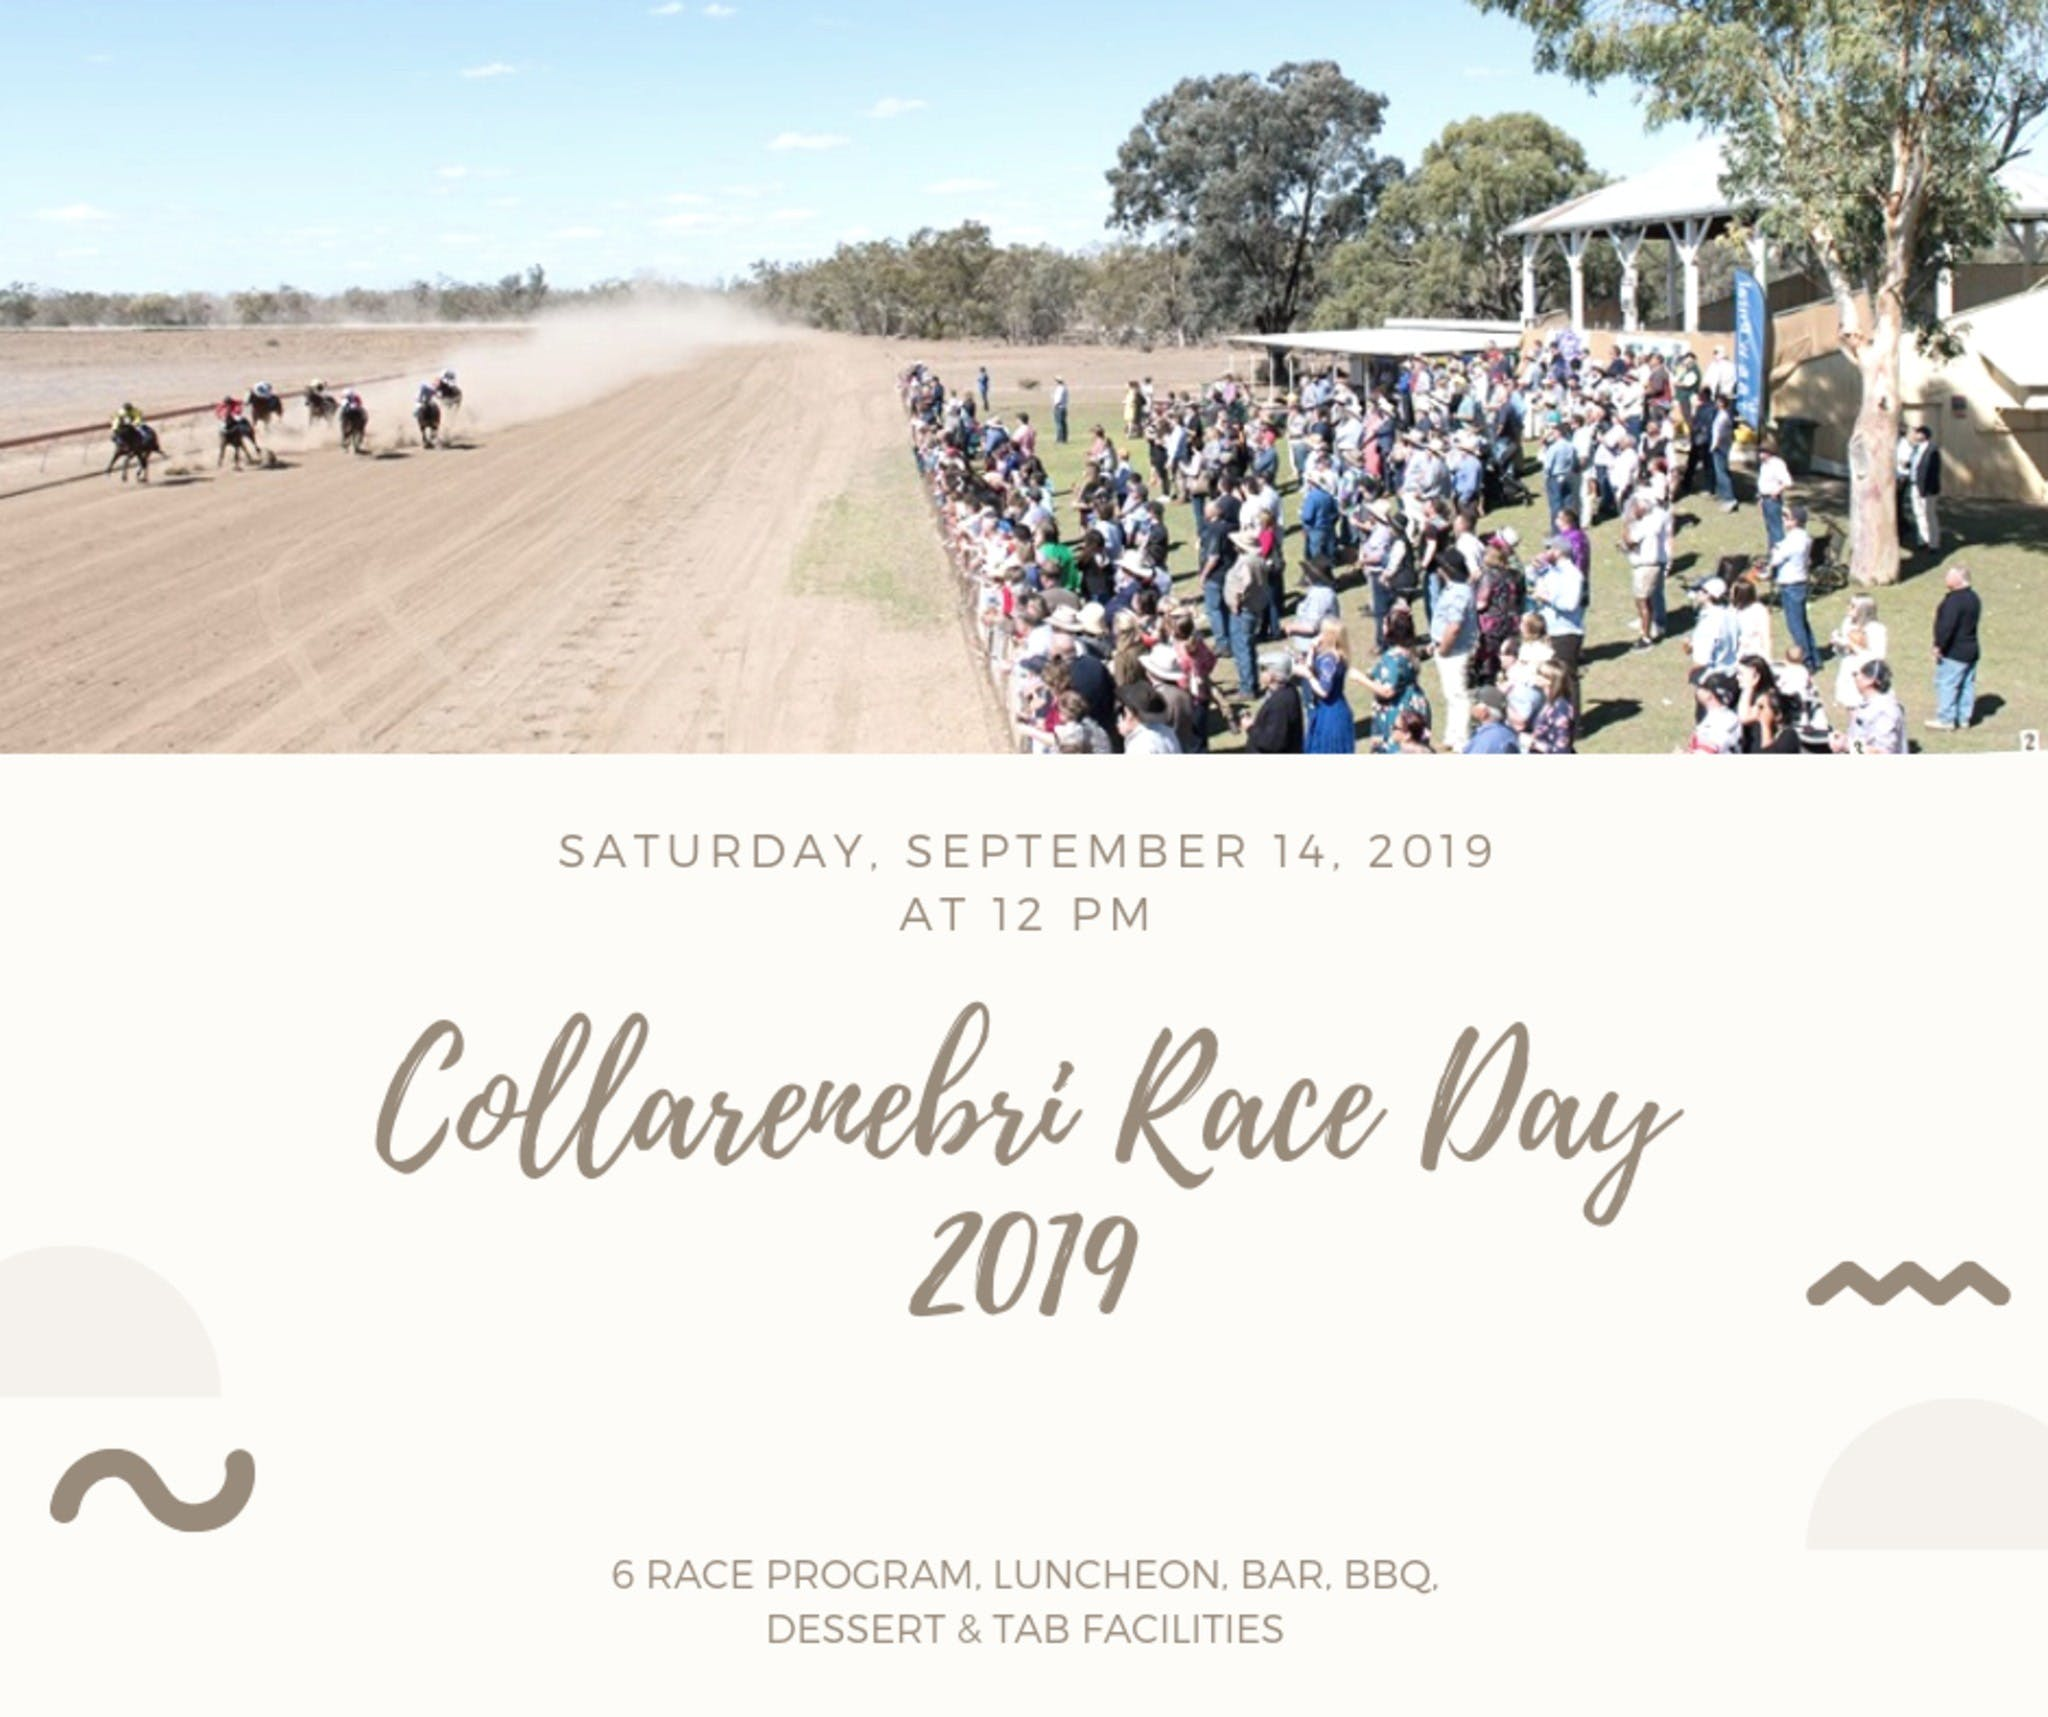 Collarenebri Races - Tourism Canberra